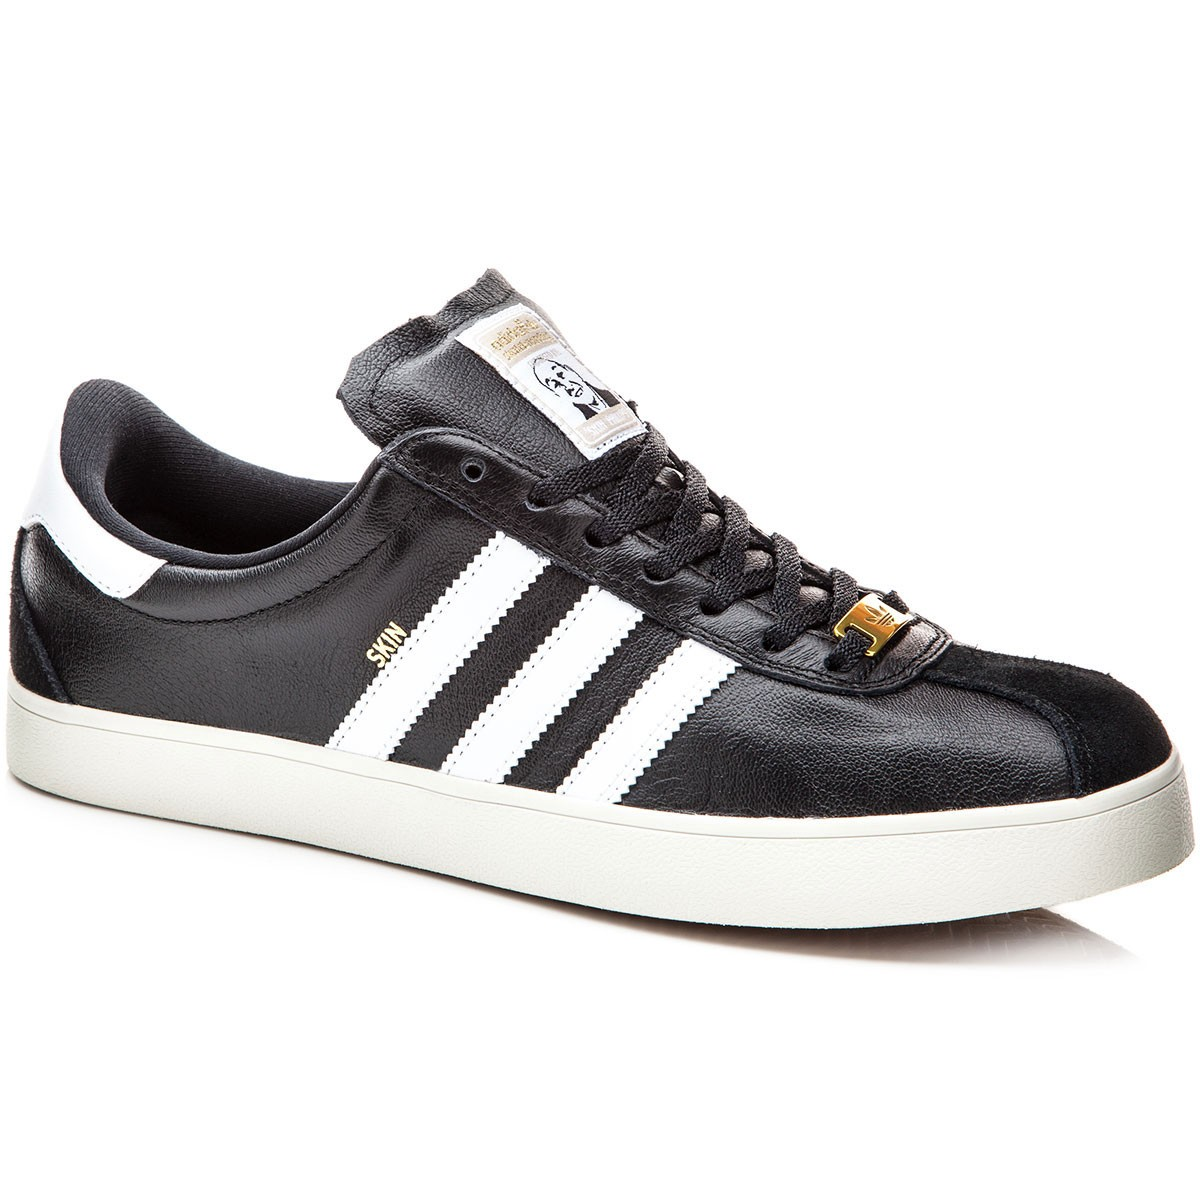 hot sale online bff23 67f09 Adidas RYR Skin Skate Shoes - BlackGold Metallic - 9.0